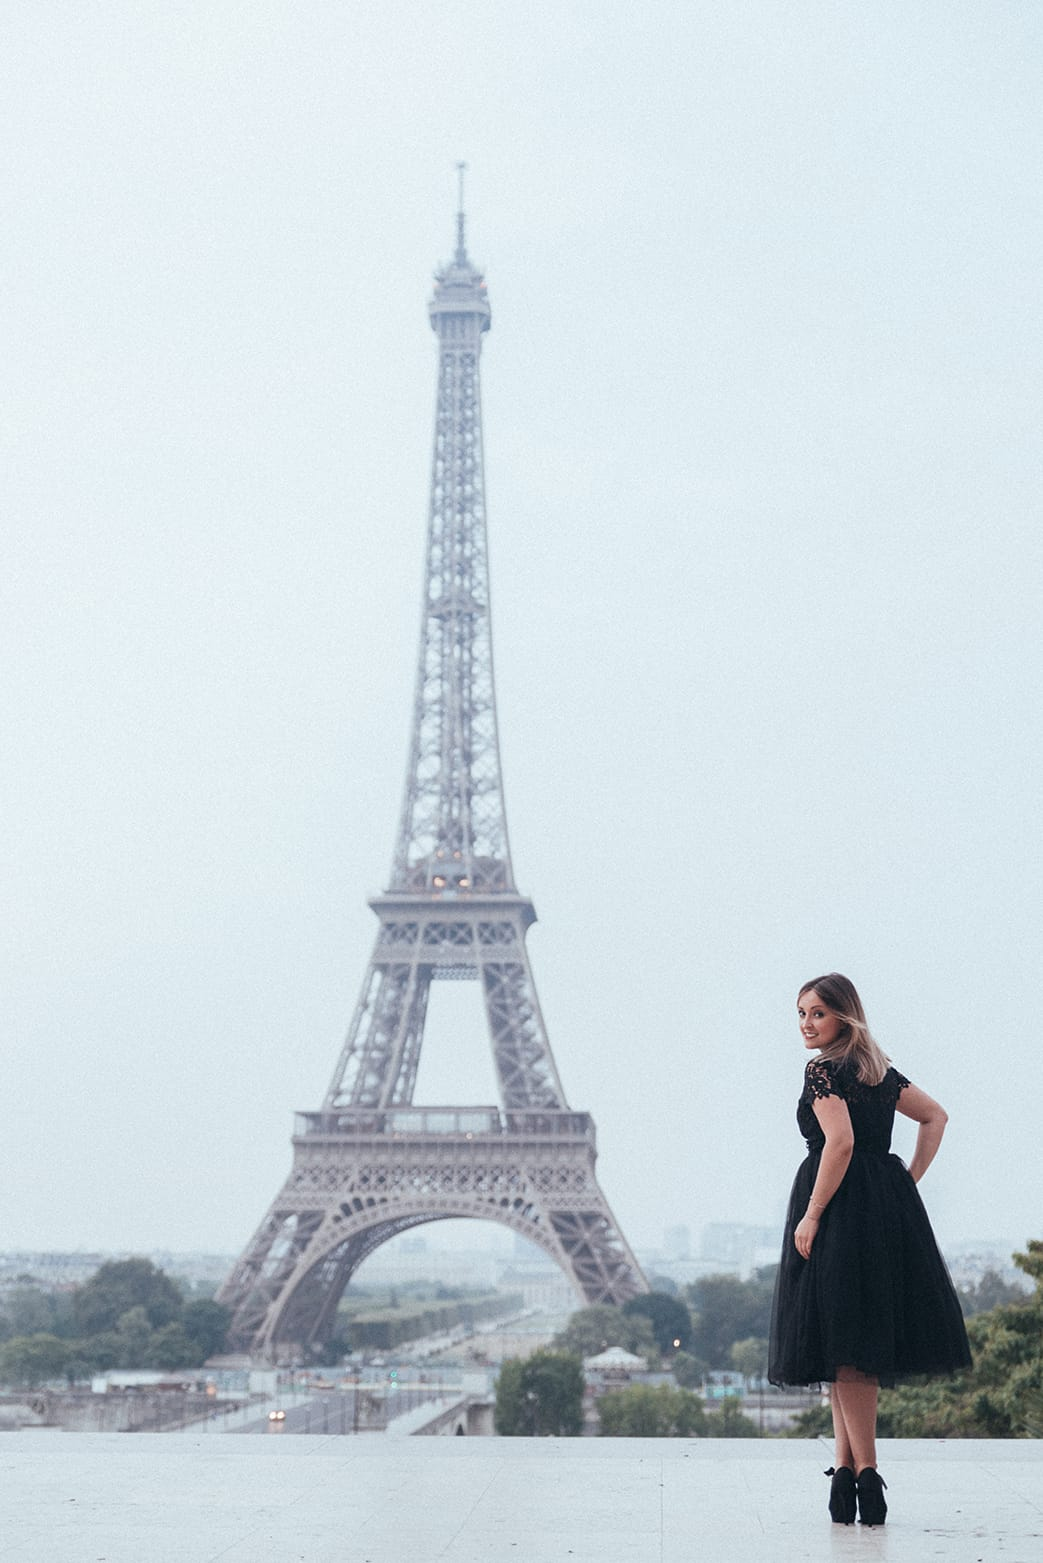 cute girl standing in front of the Eiffel Tower